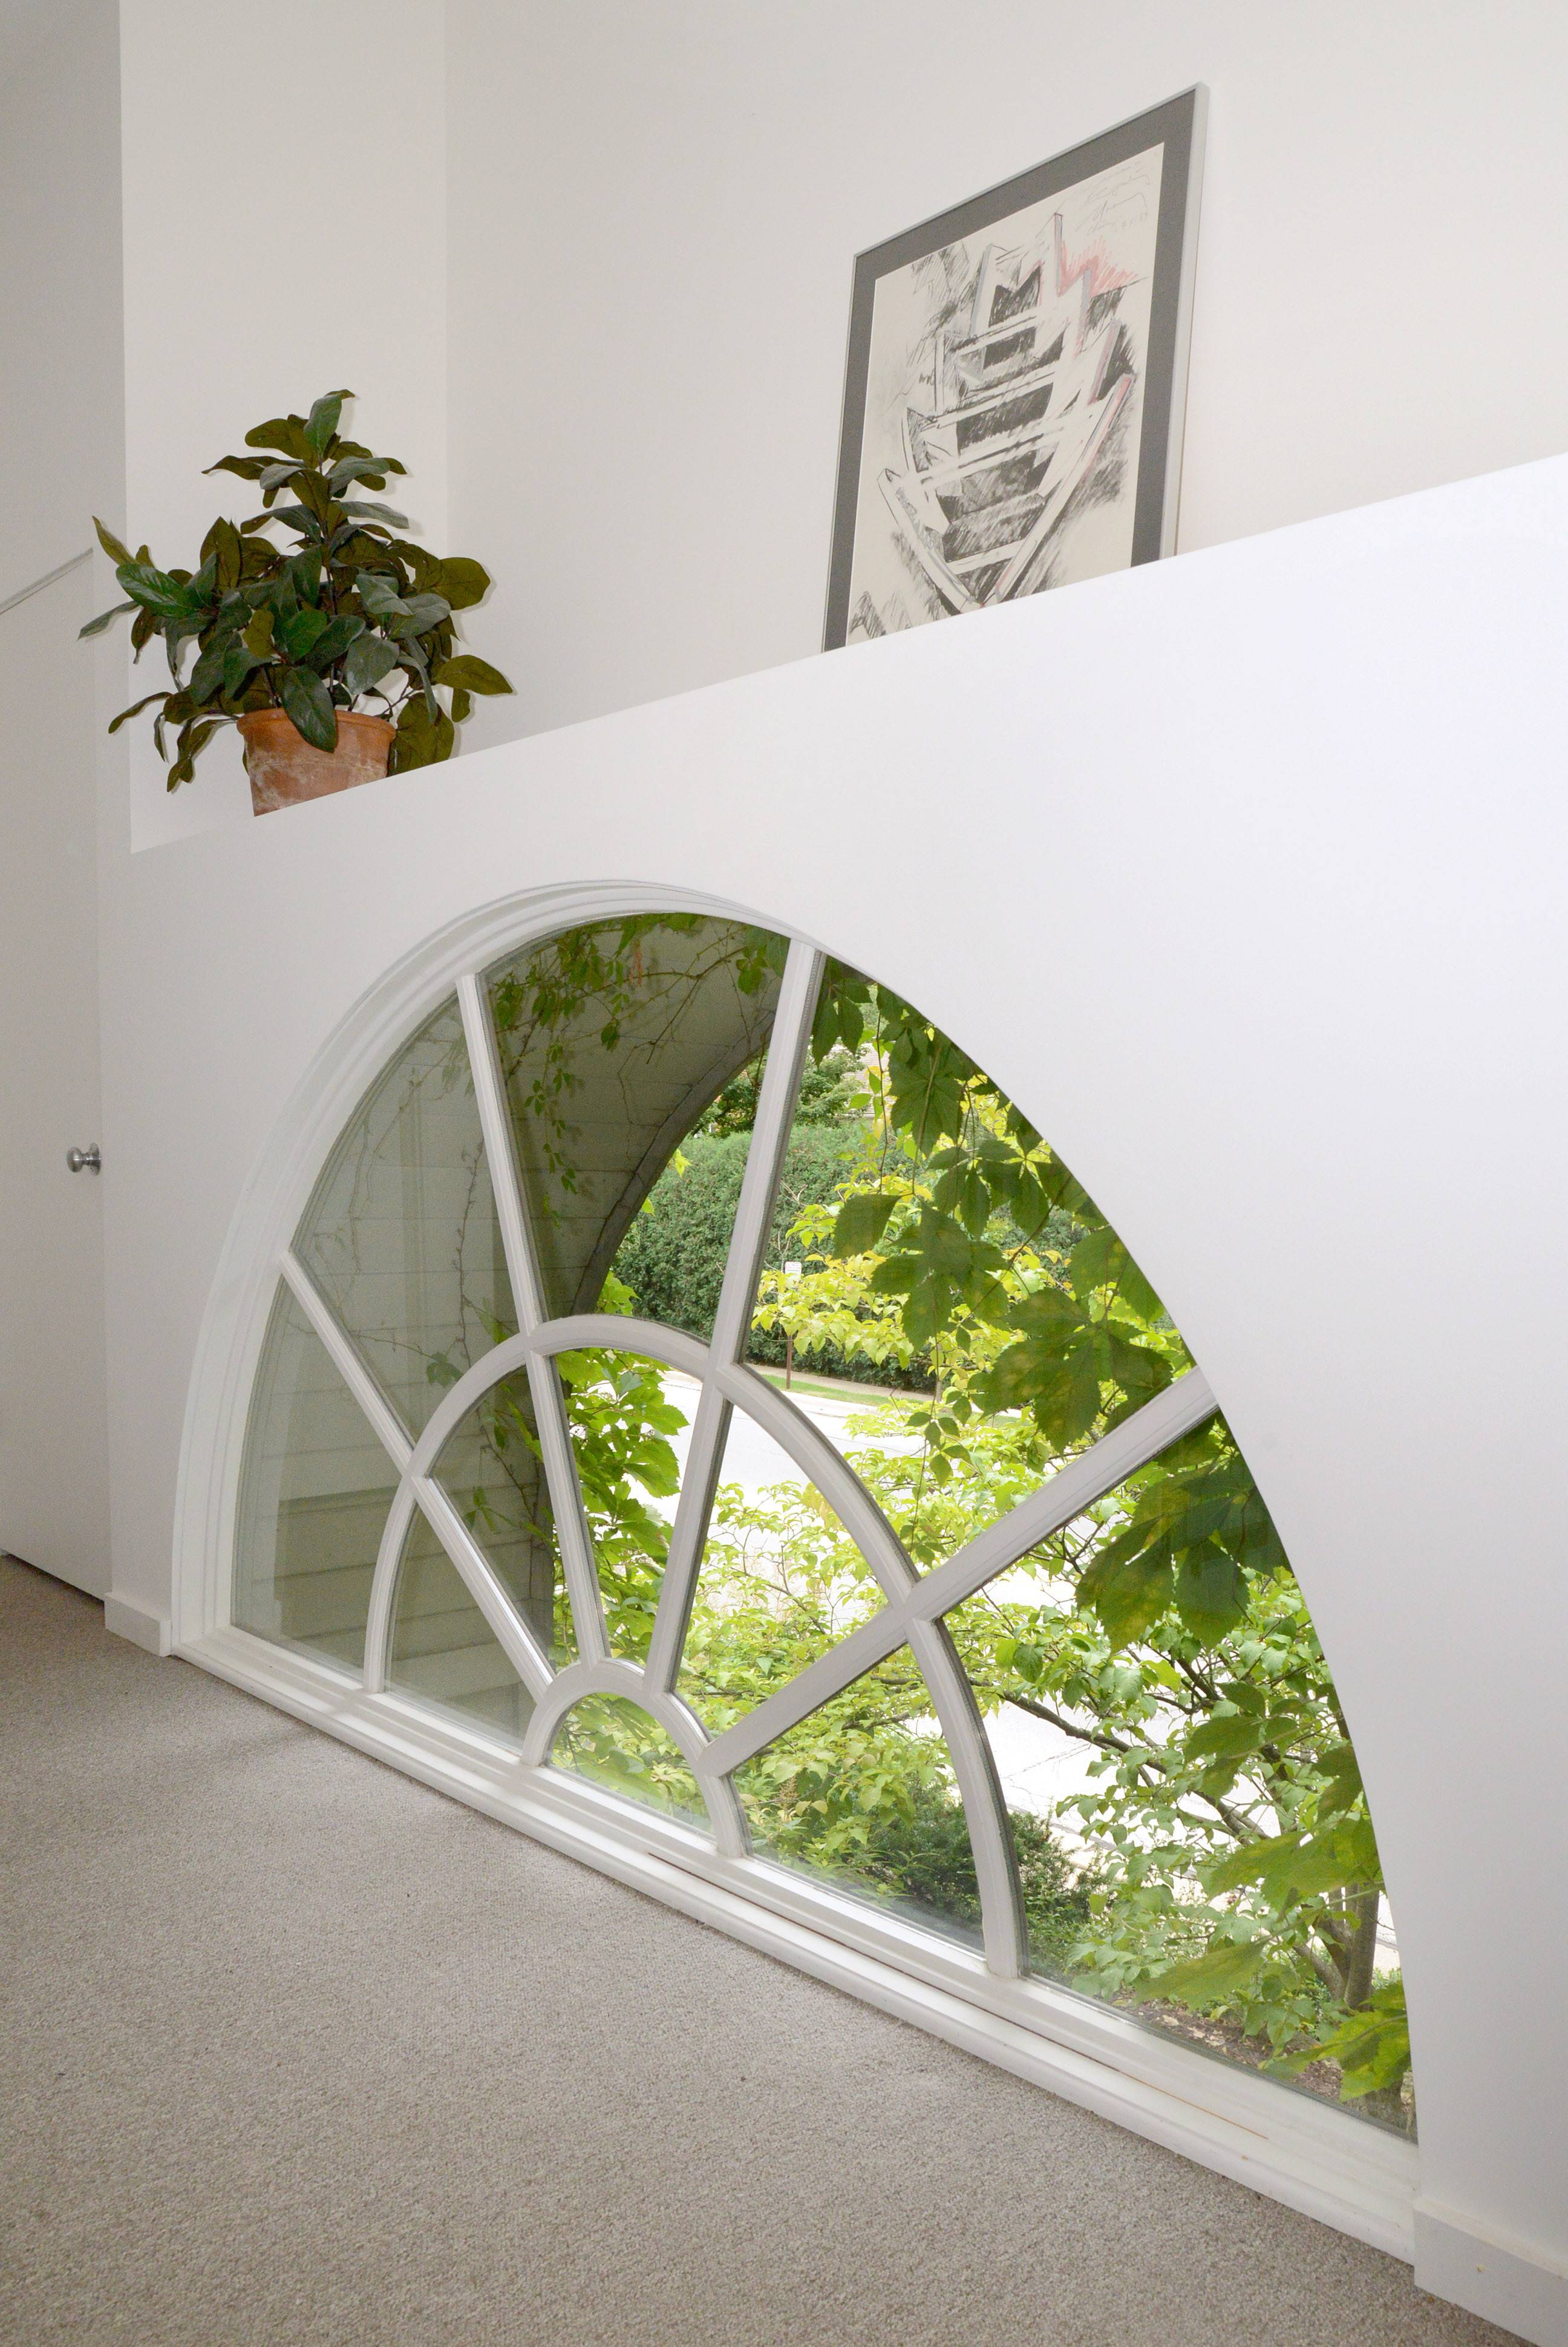 Arched window over the front door of the home as viewed from inside on the second floor.